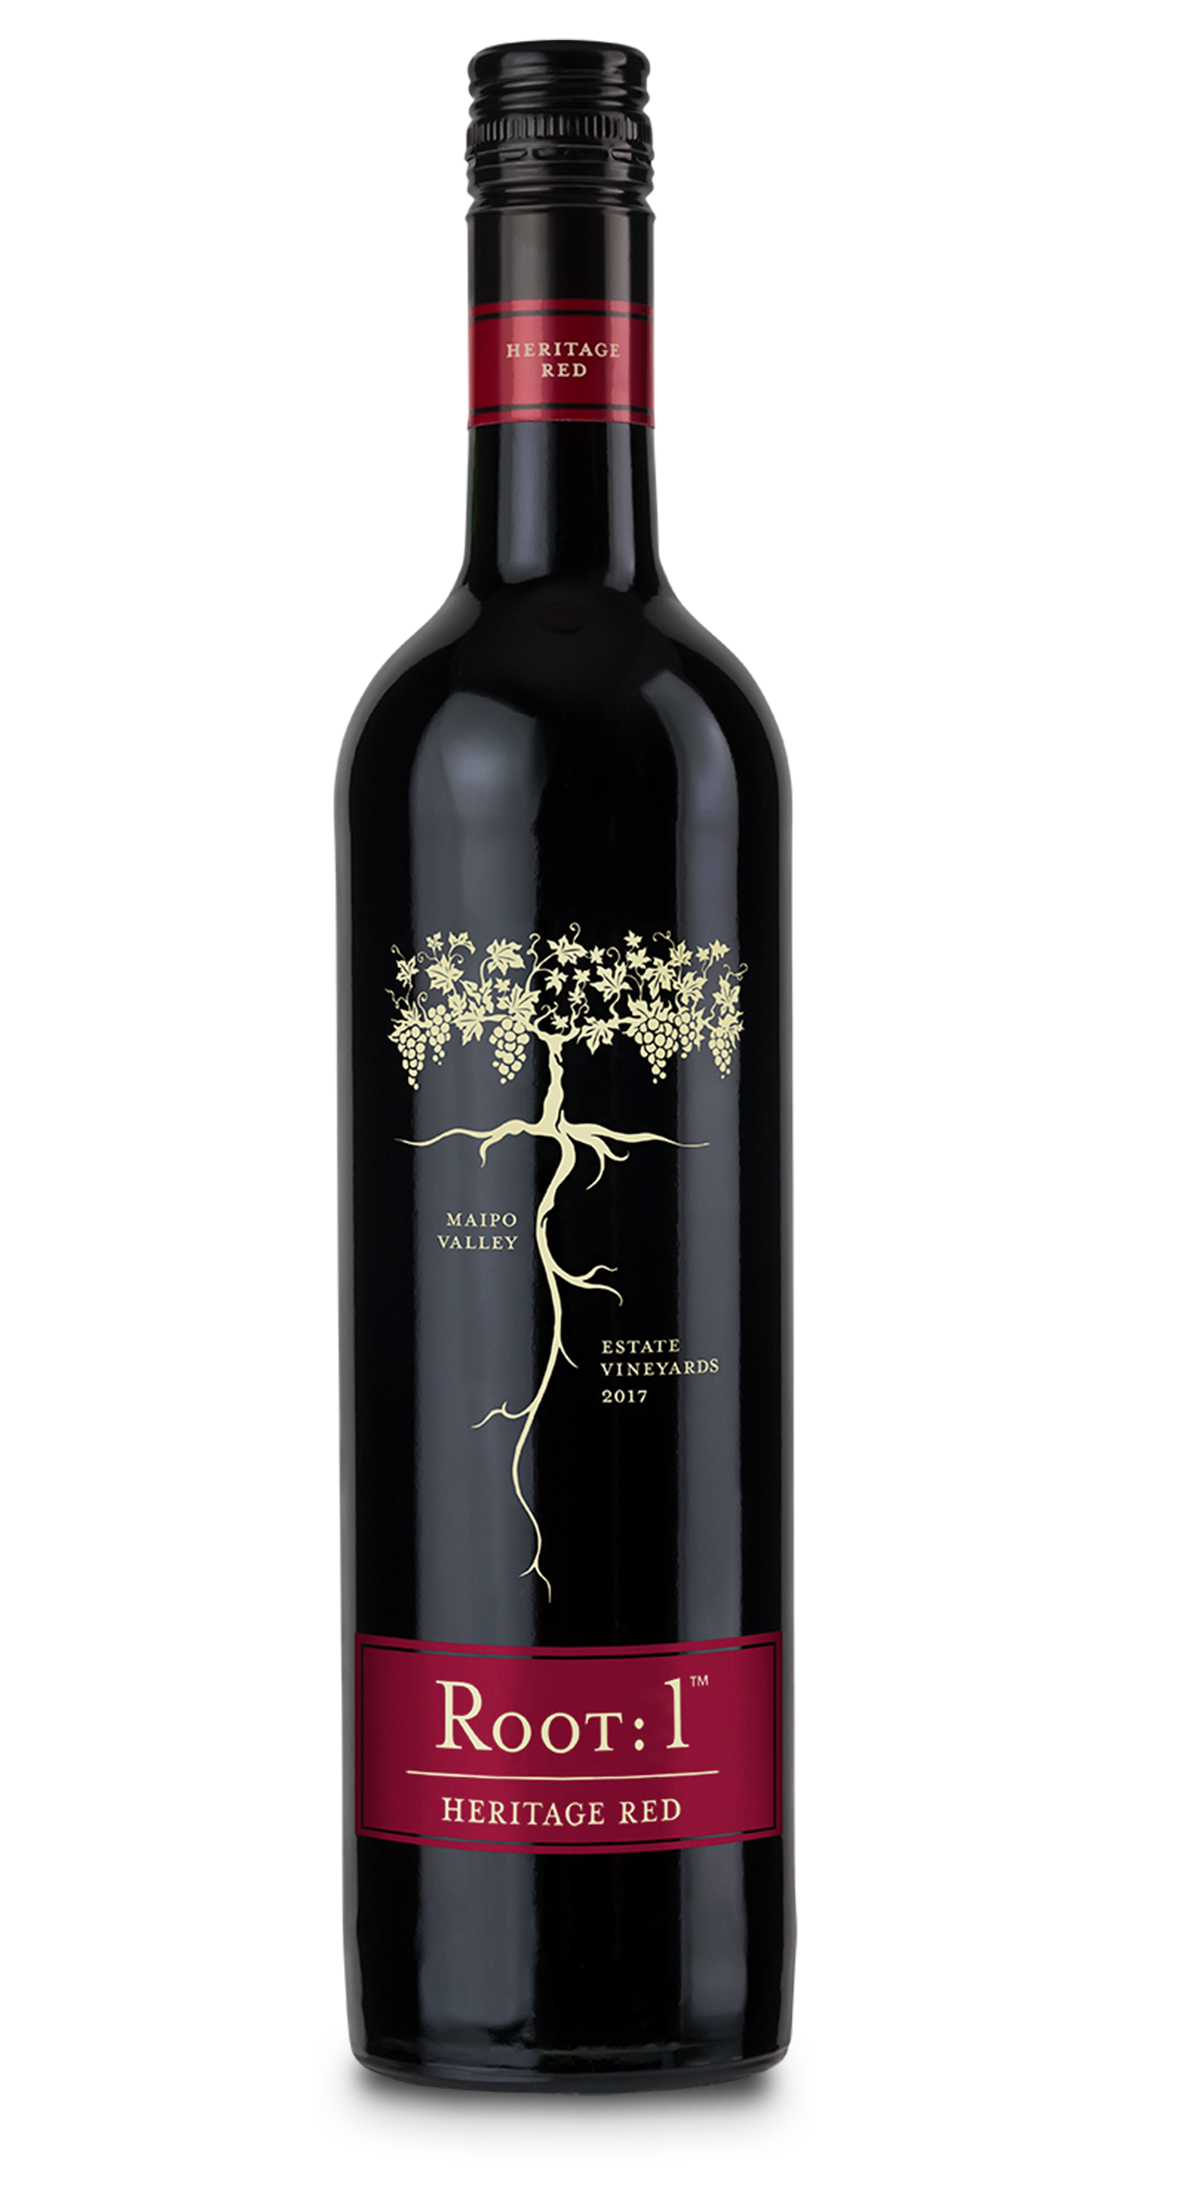 Root: 1 Heritage Red - Chilean wine